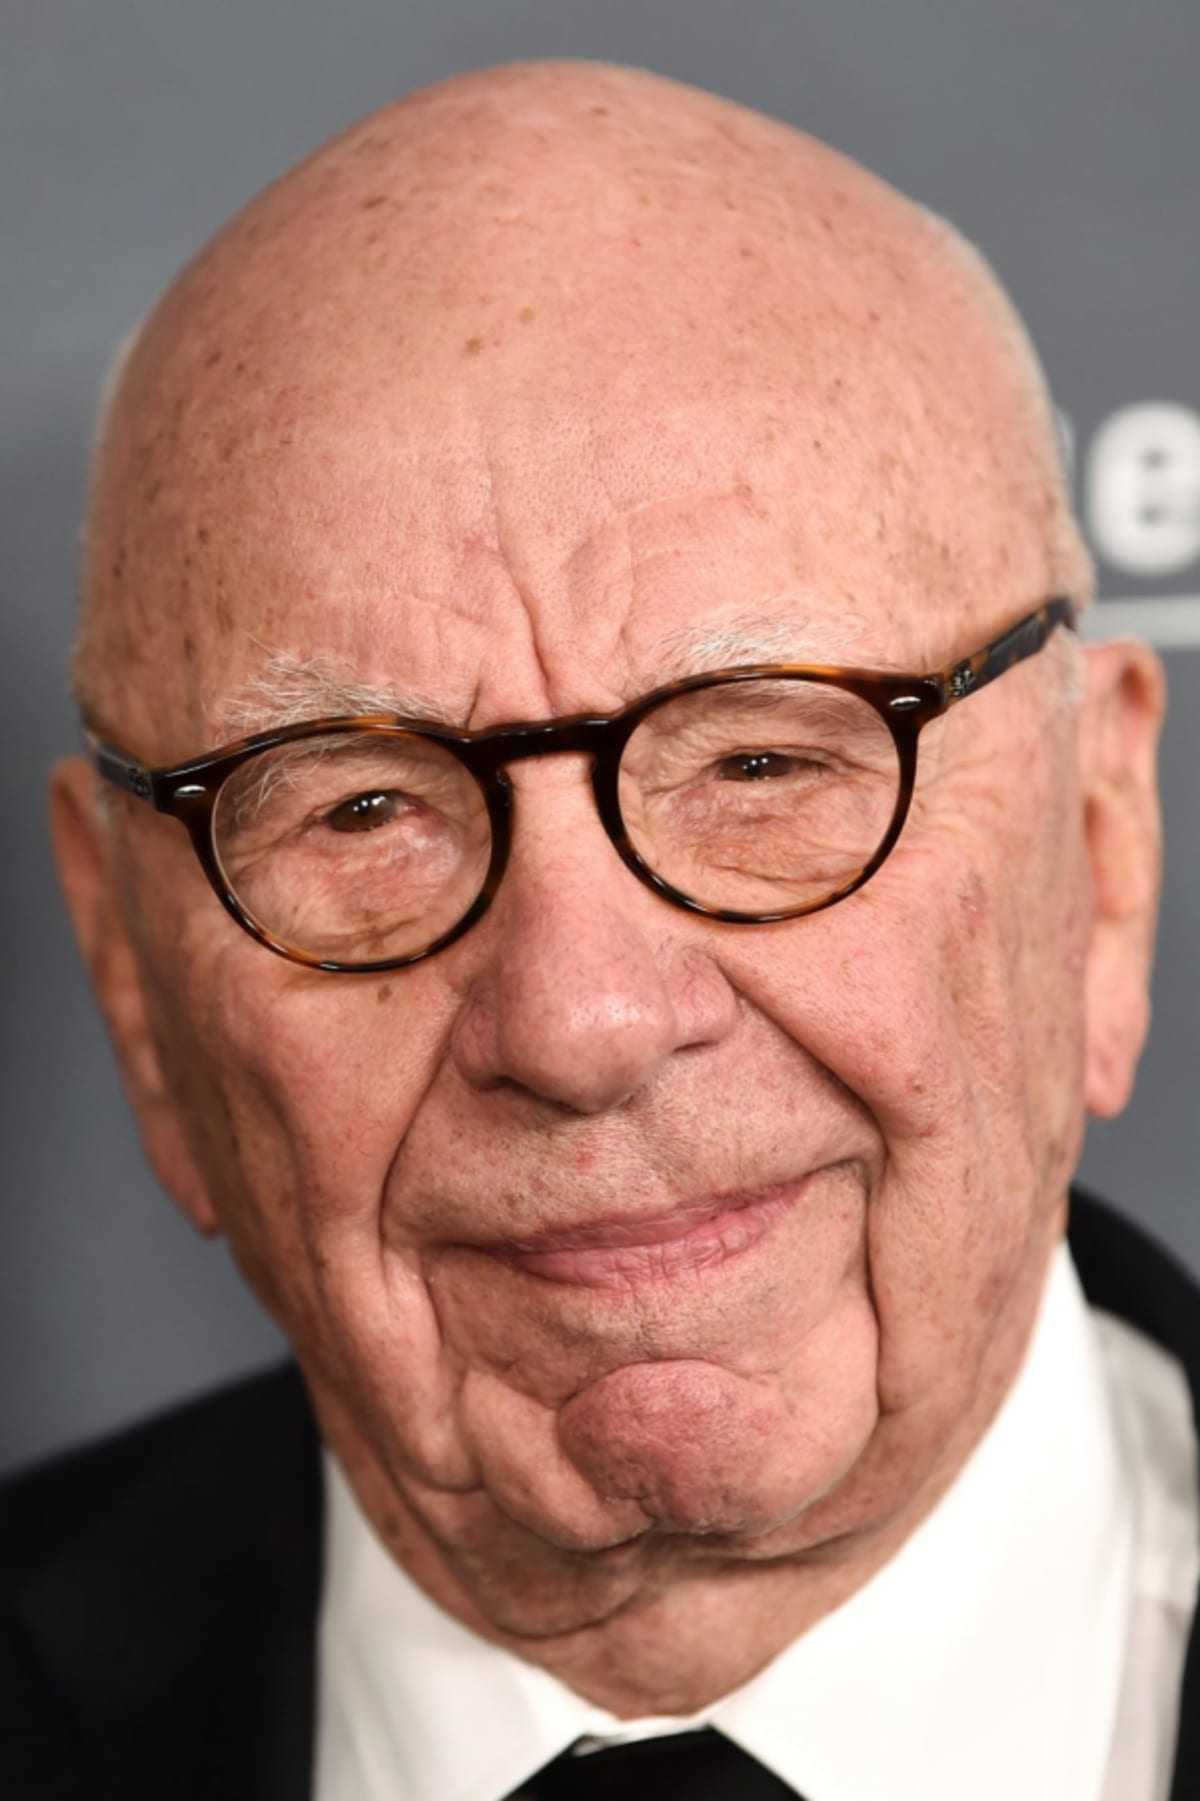 Rupert Murdoch - image link to source article